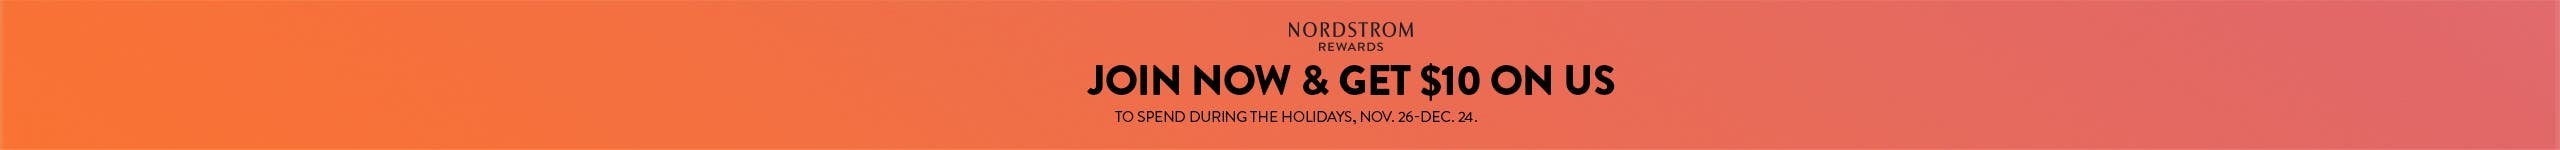 Nordstrom Rewards: Join now and get $10 on us to spend during the holidays, November 26 through December 24.